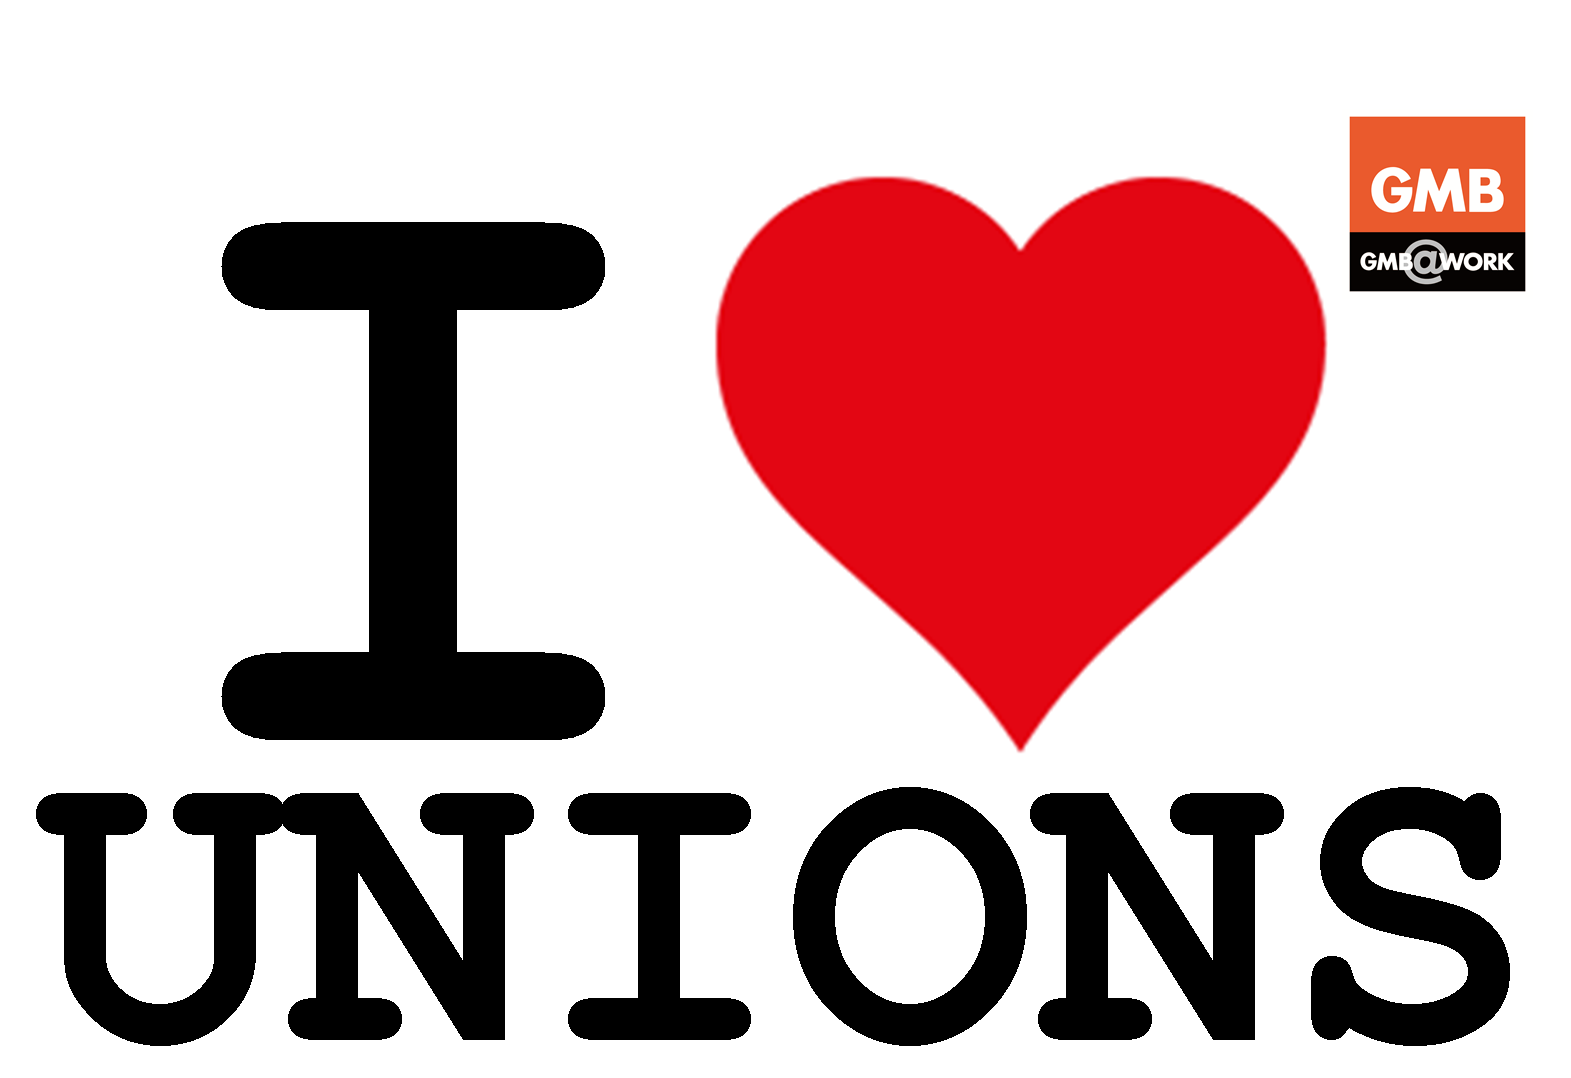 Heart_Unions_square.png